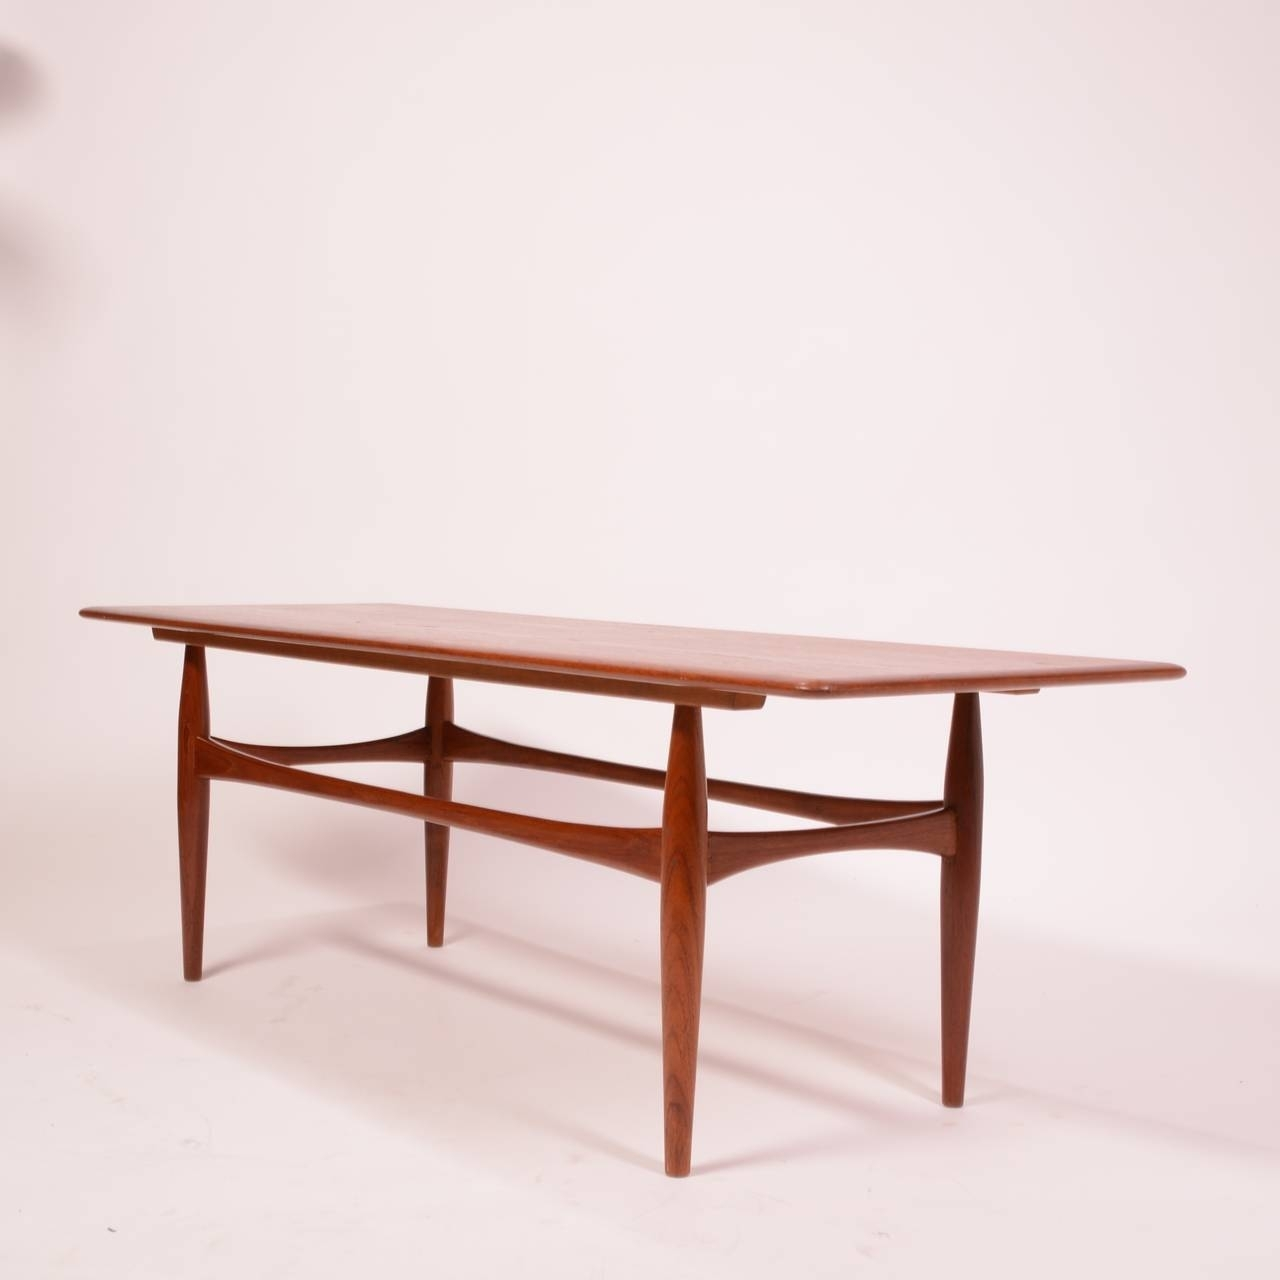 Large Danish Modern Coffee Table In Teak At 1Stdibs in Large Teak Coffee Tables (Image 9 of 30)